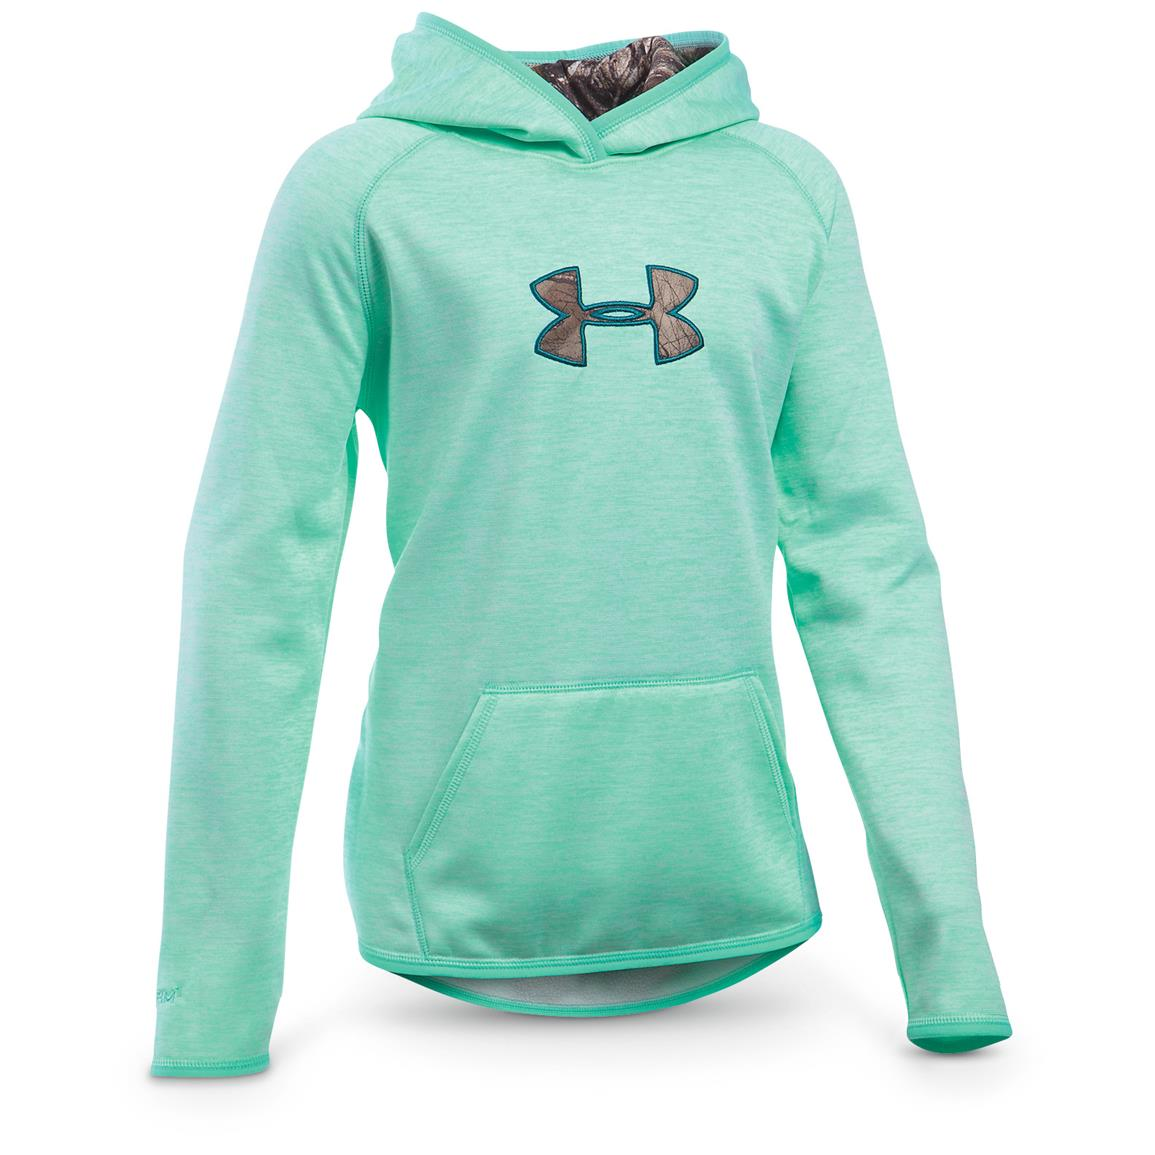 Under Armour Girls' Icon Caliber Hoodie, Crystal / Realtree Xtra